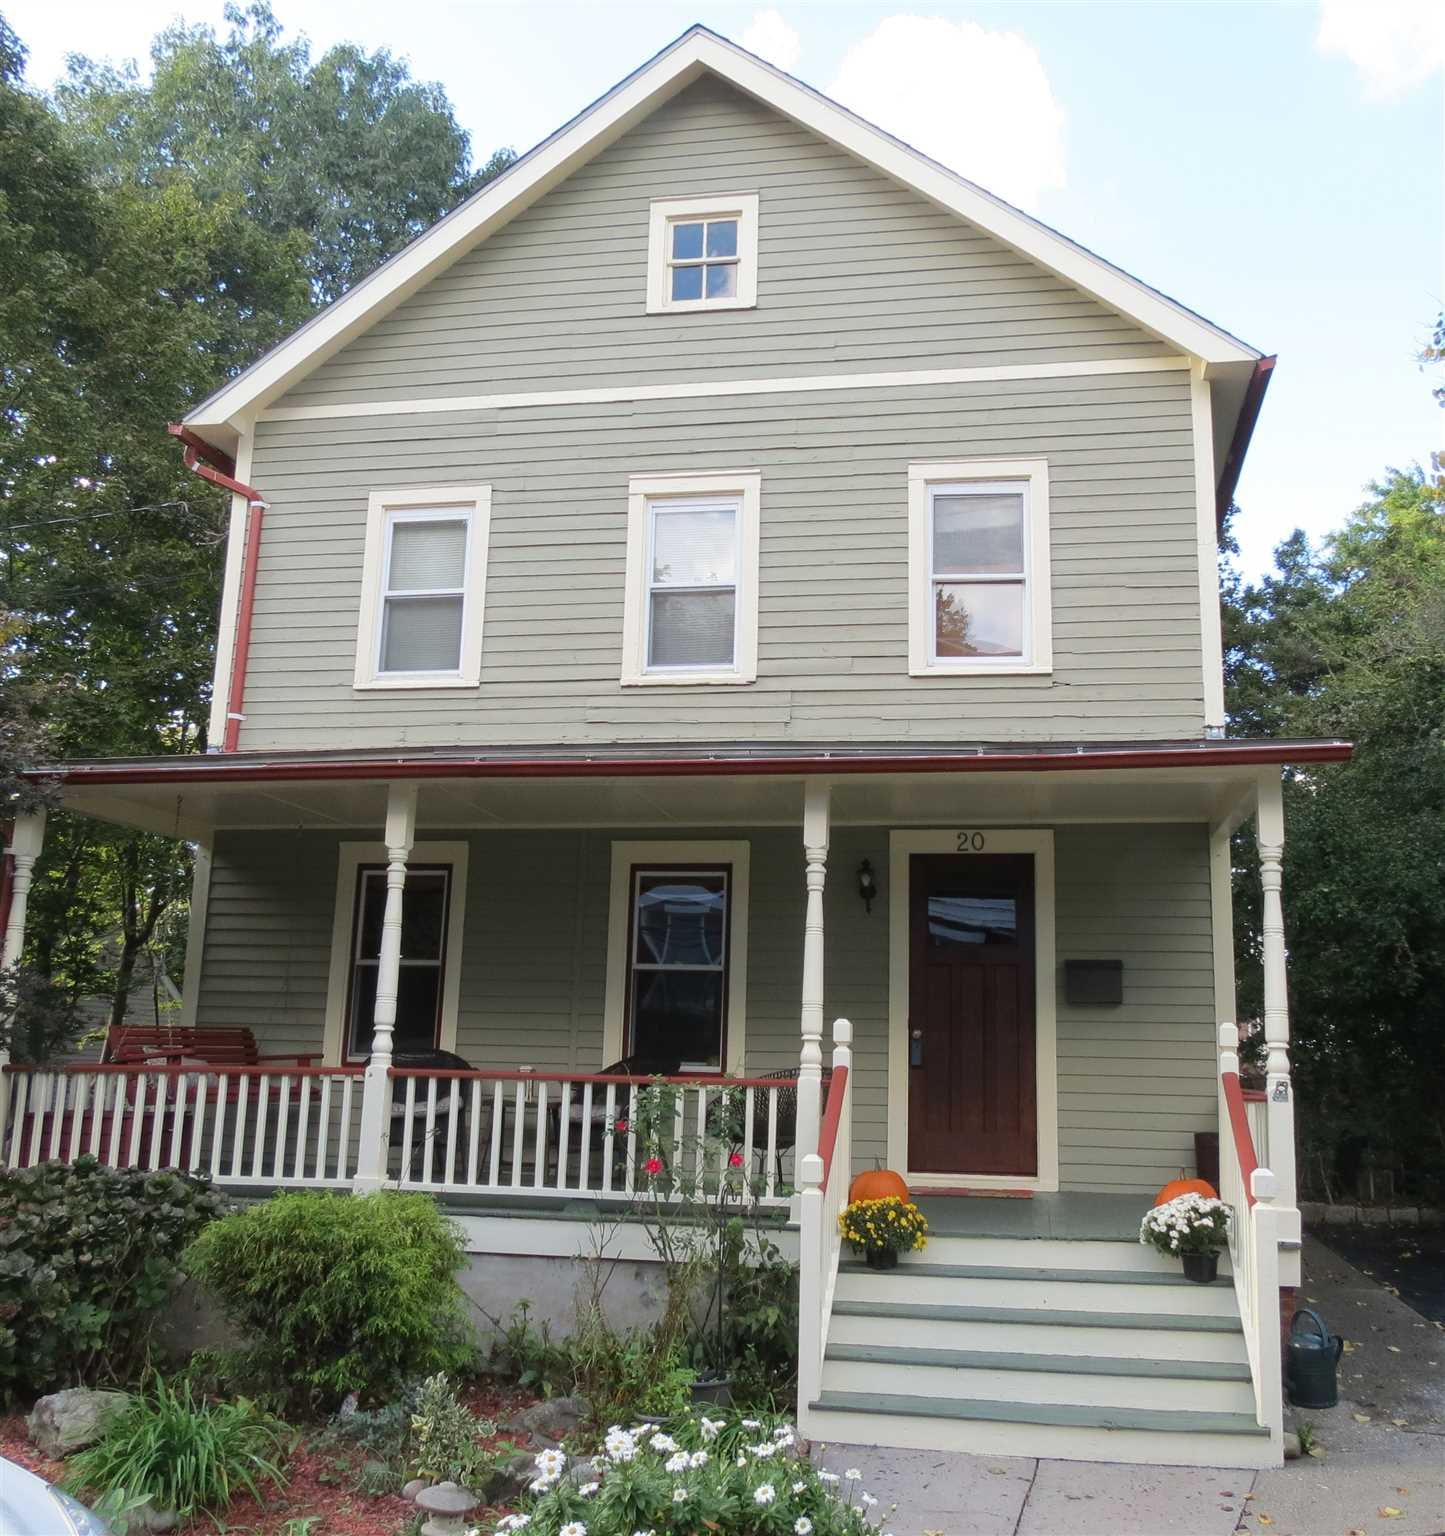 Single Family Home for Sale at 20 ROCK Street 20 ROCK Street Philipstown, New York 10516 United States